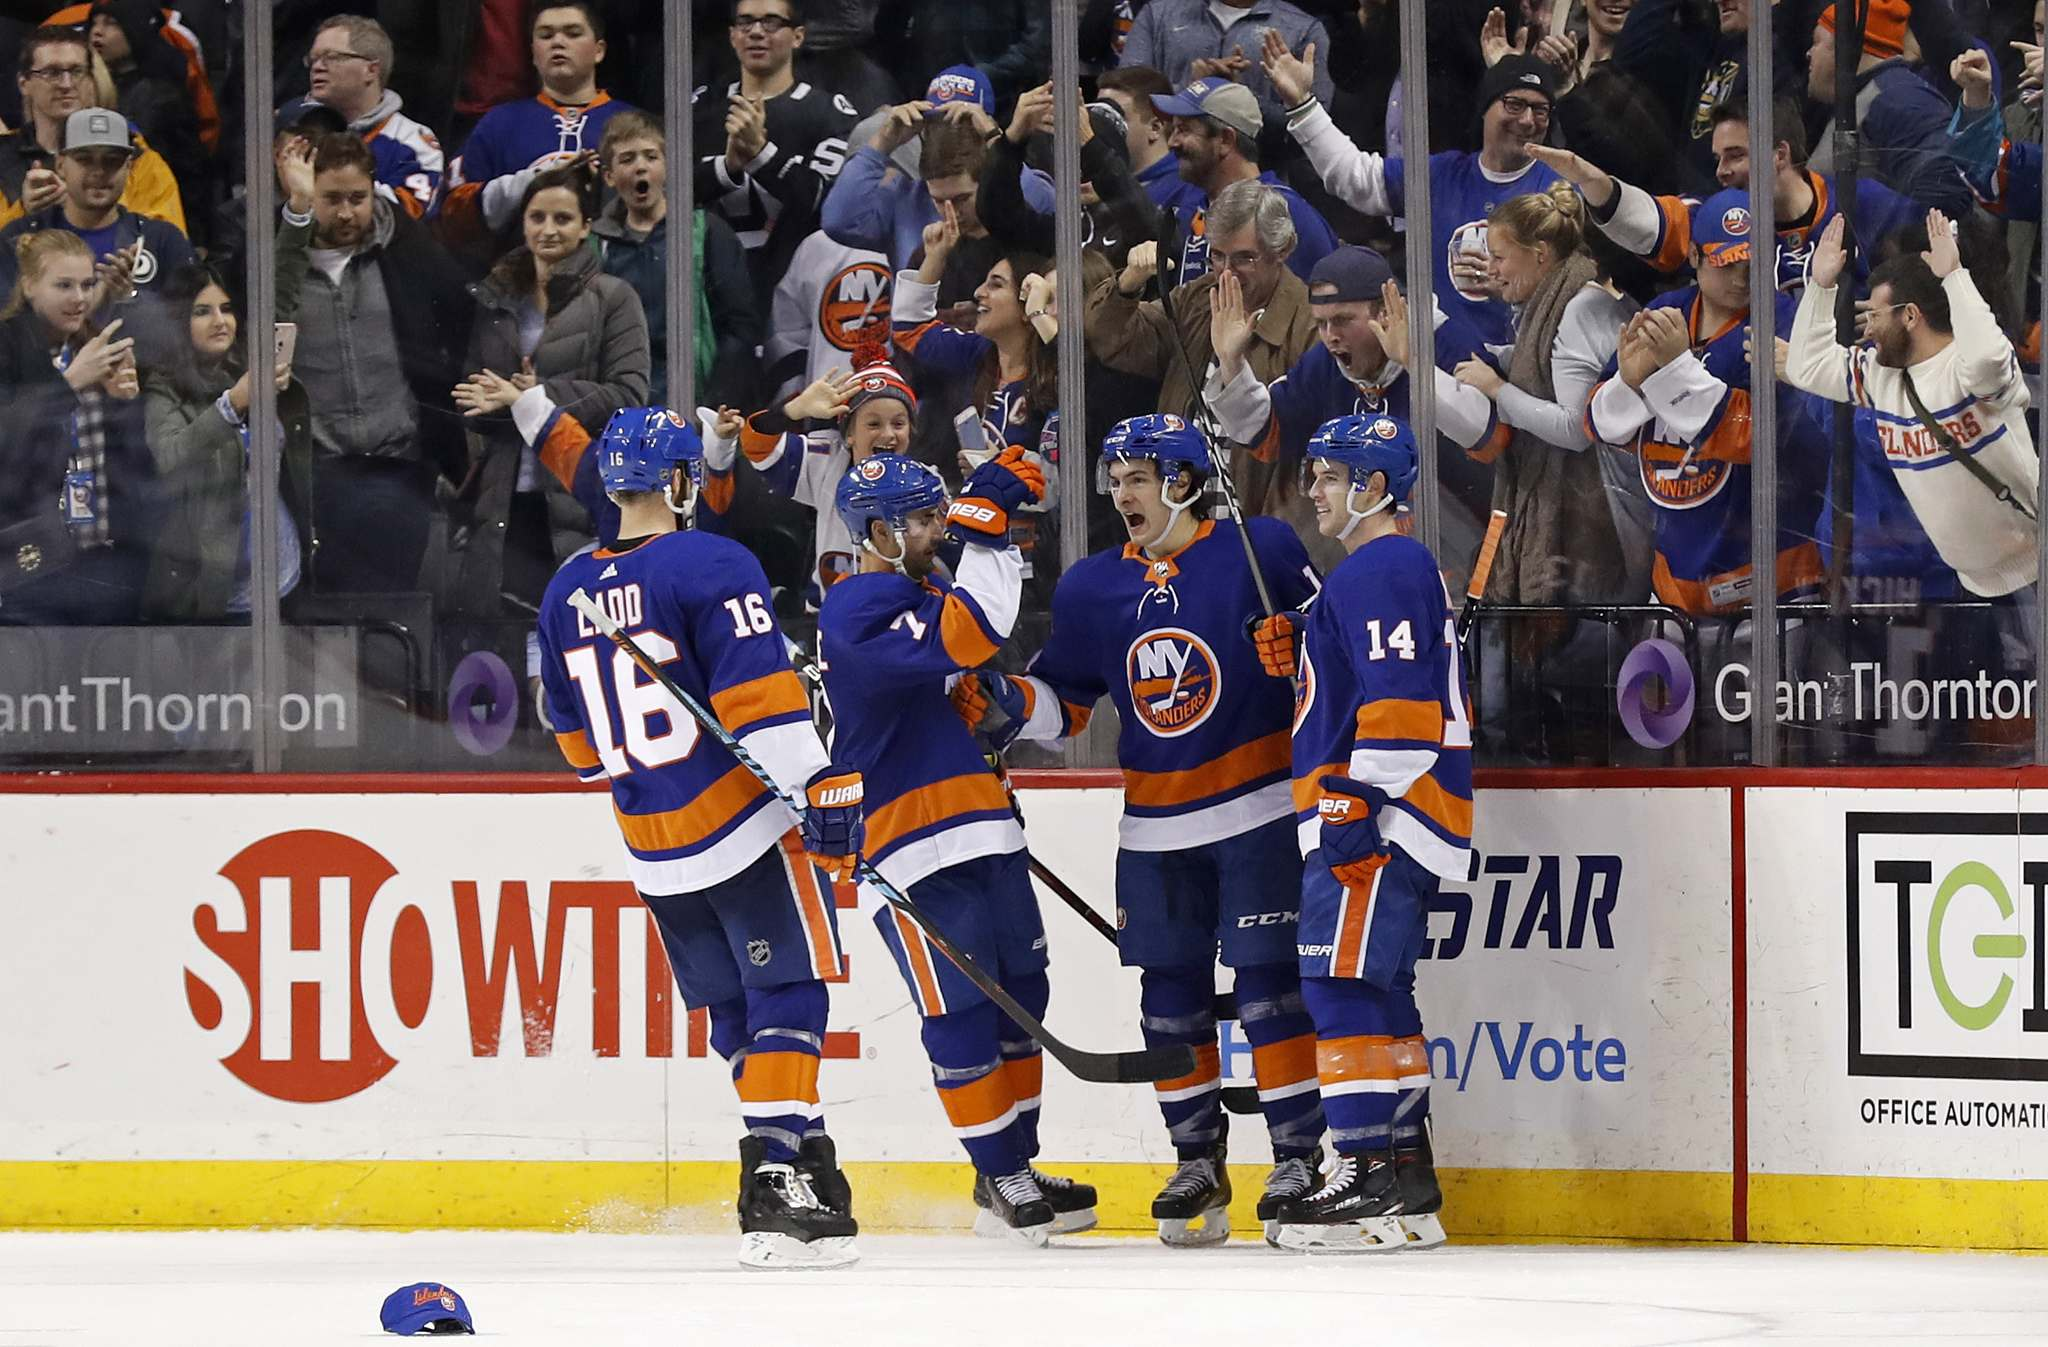 Mathew Barzal, second right, celebrates after scoring his third goal of the game against the Jets. (Adam Hunger / Associated Press files)</p>